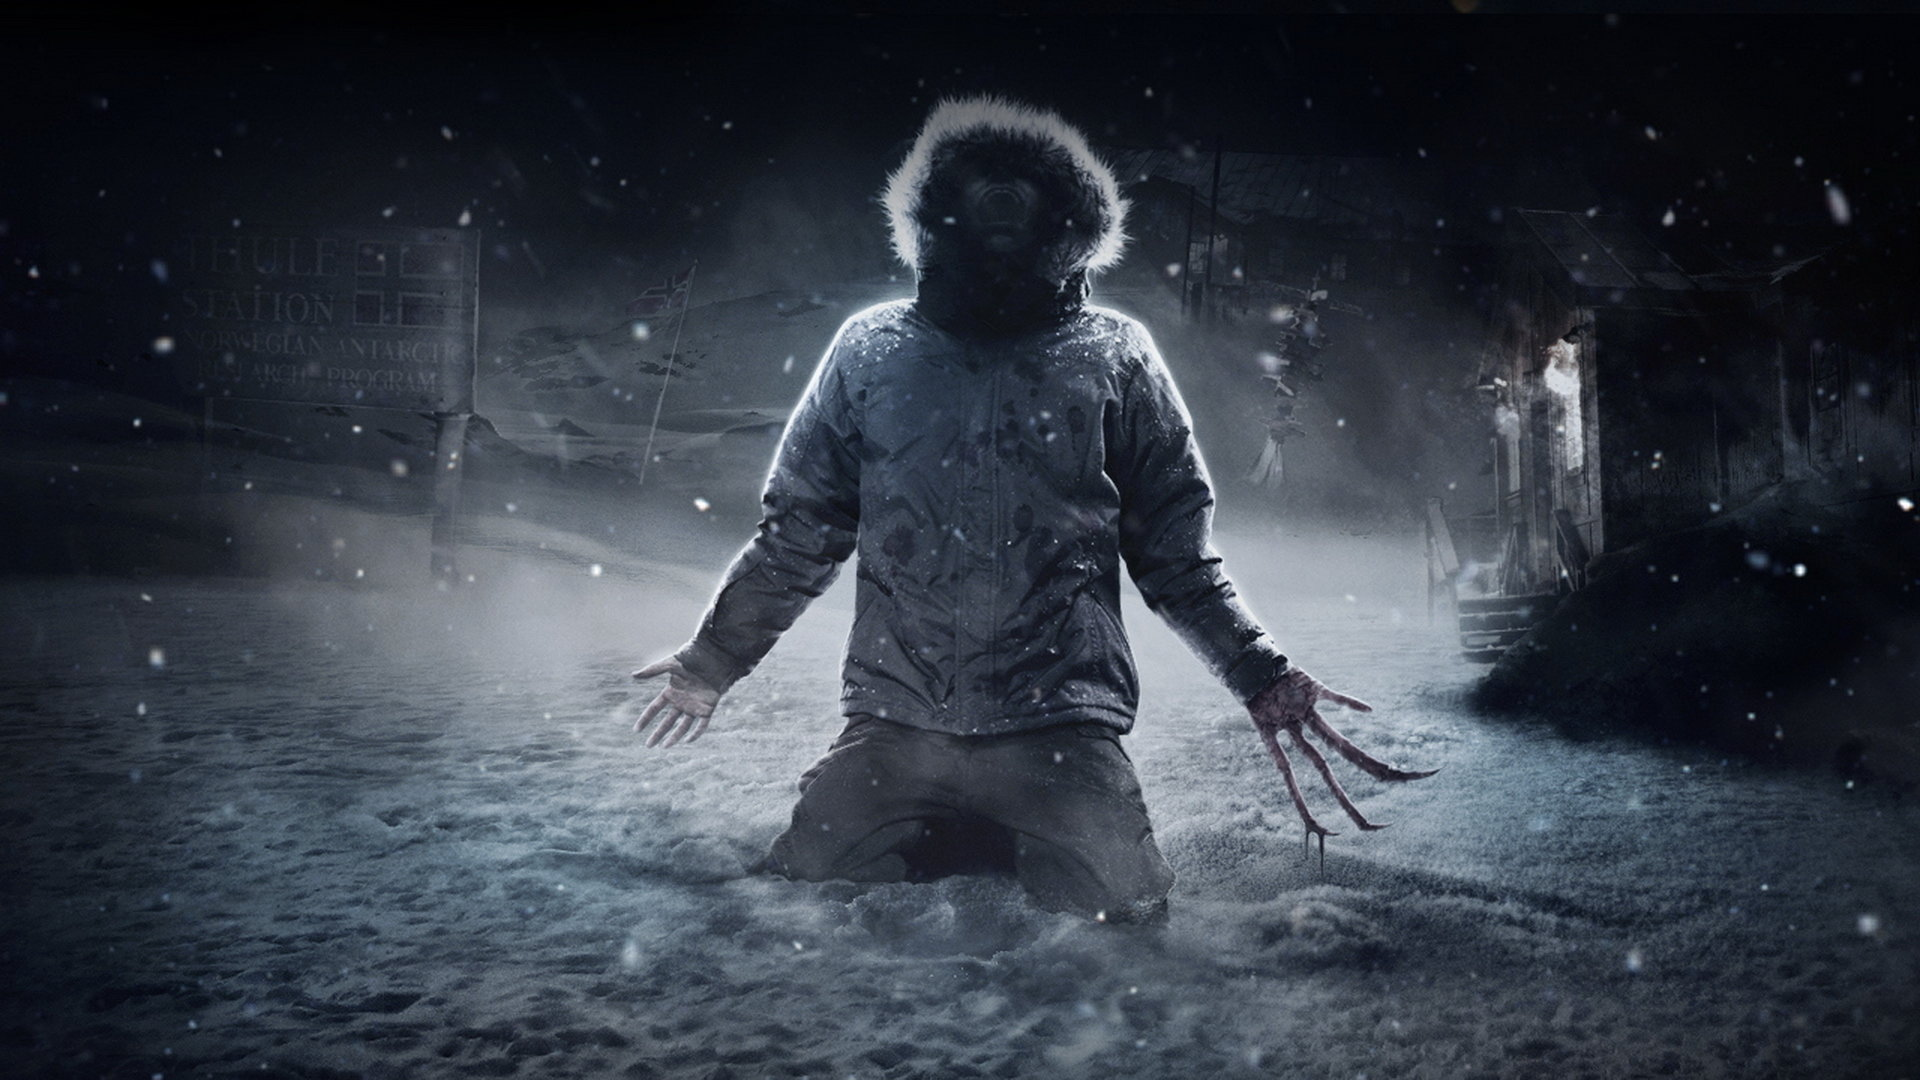 High resolution The Thing (2011) full hd 1920x1080 wallpaper ID:246440 for desktop